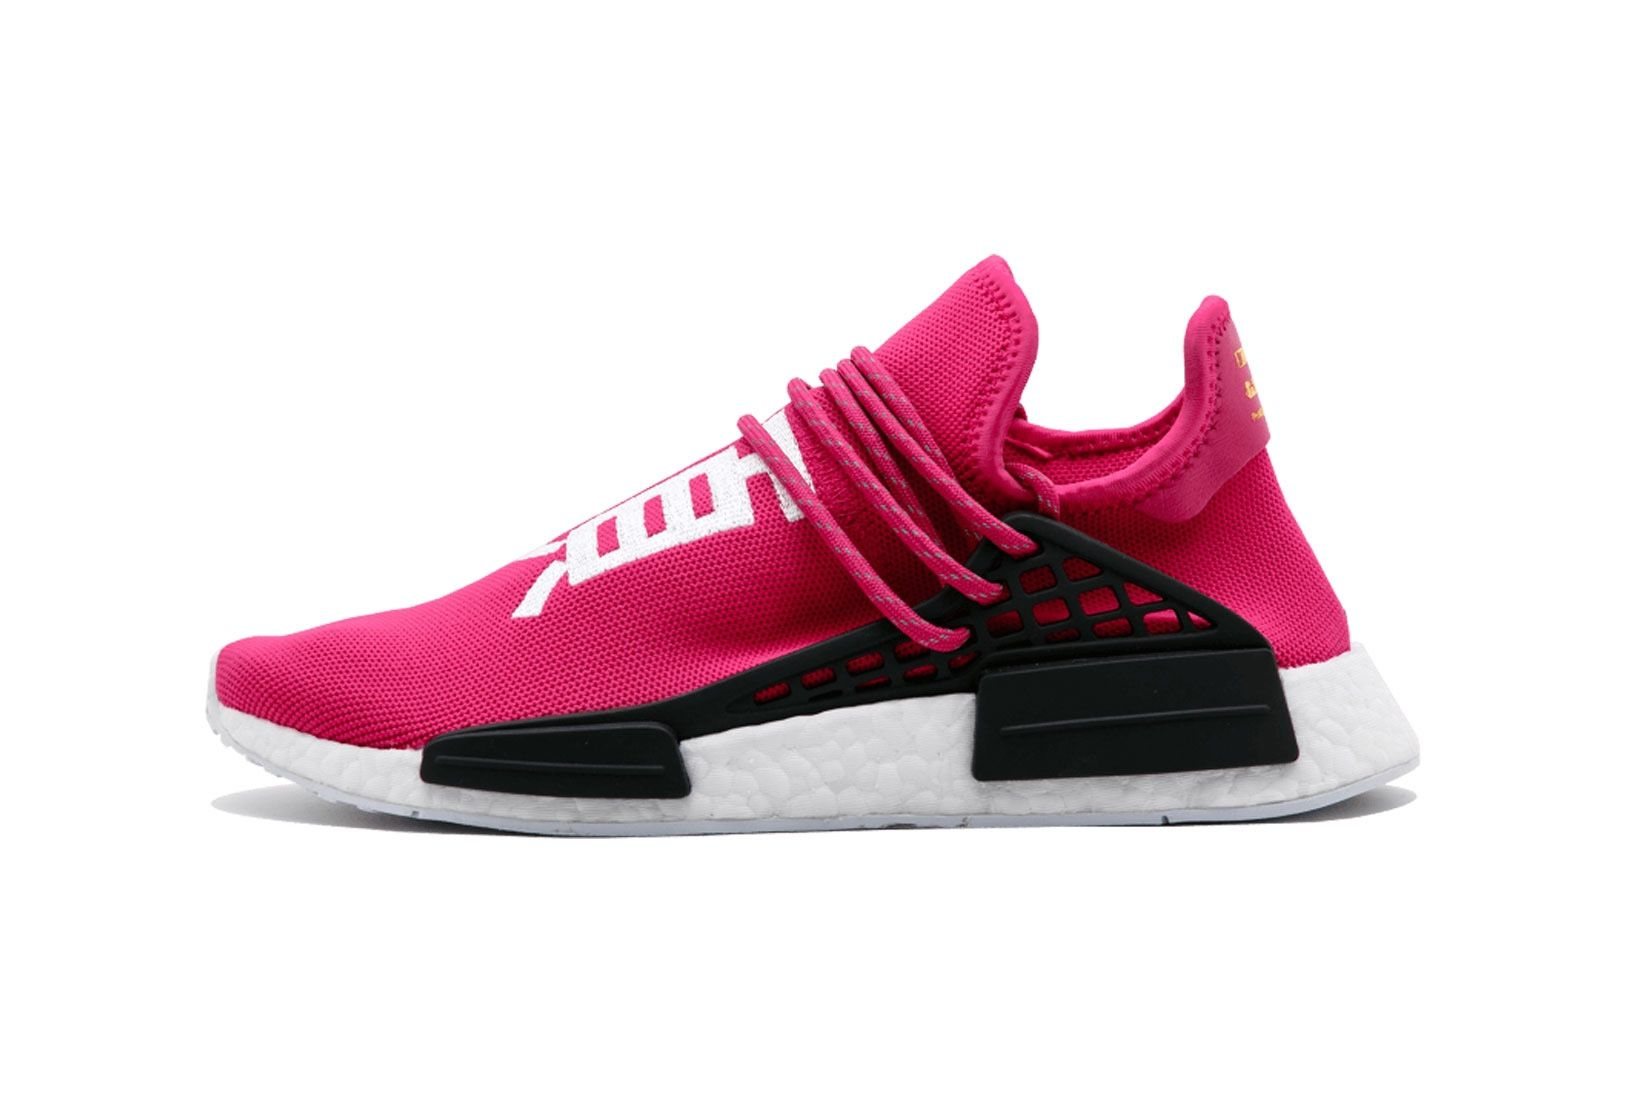 new arrival 182f4 bfa93 Pharrell x adidas Originals NMD Human Race in